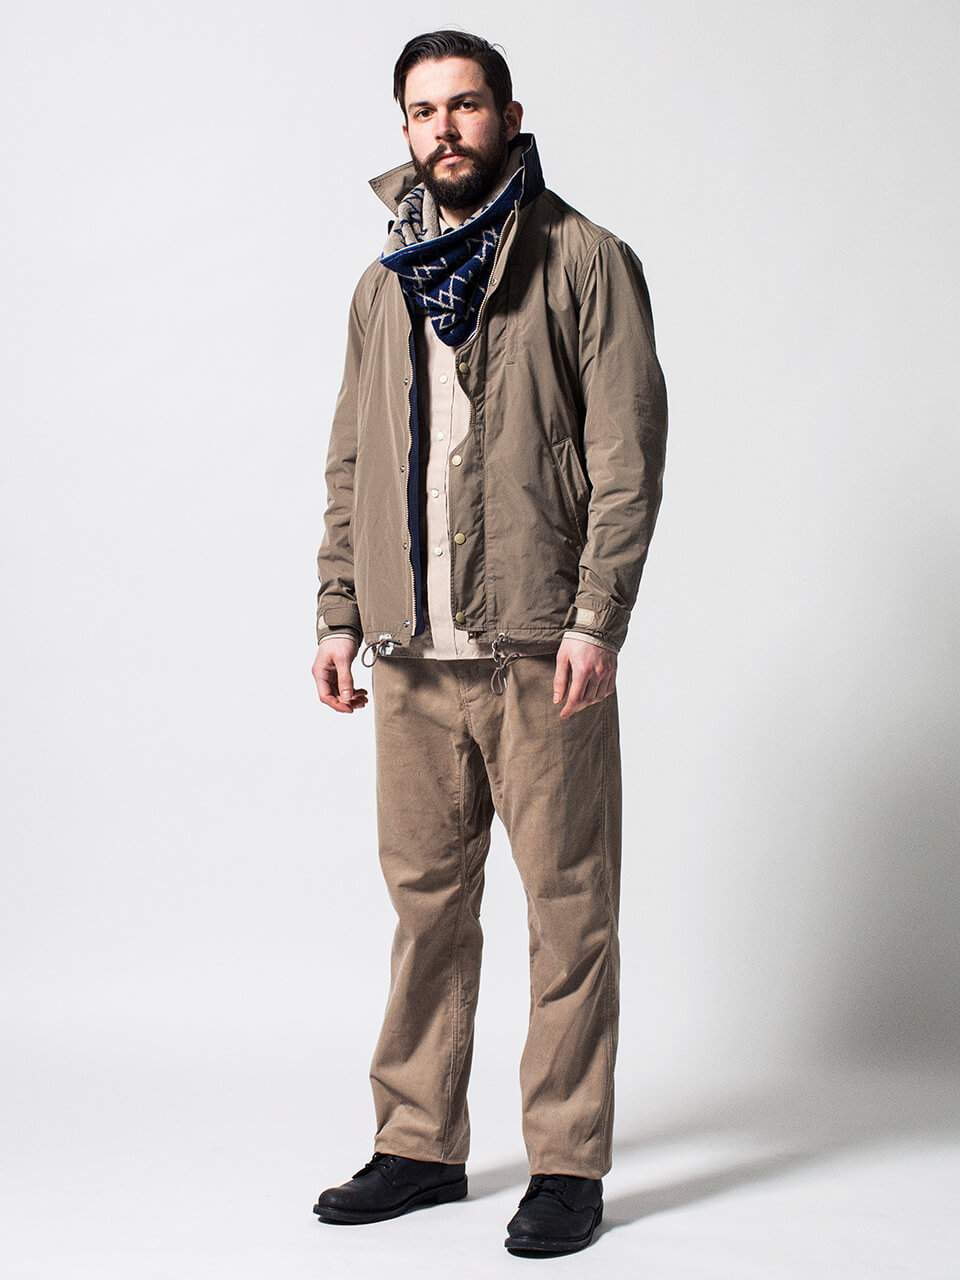 2015 AUTUMN/WINTER COLLECTION